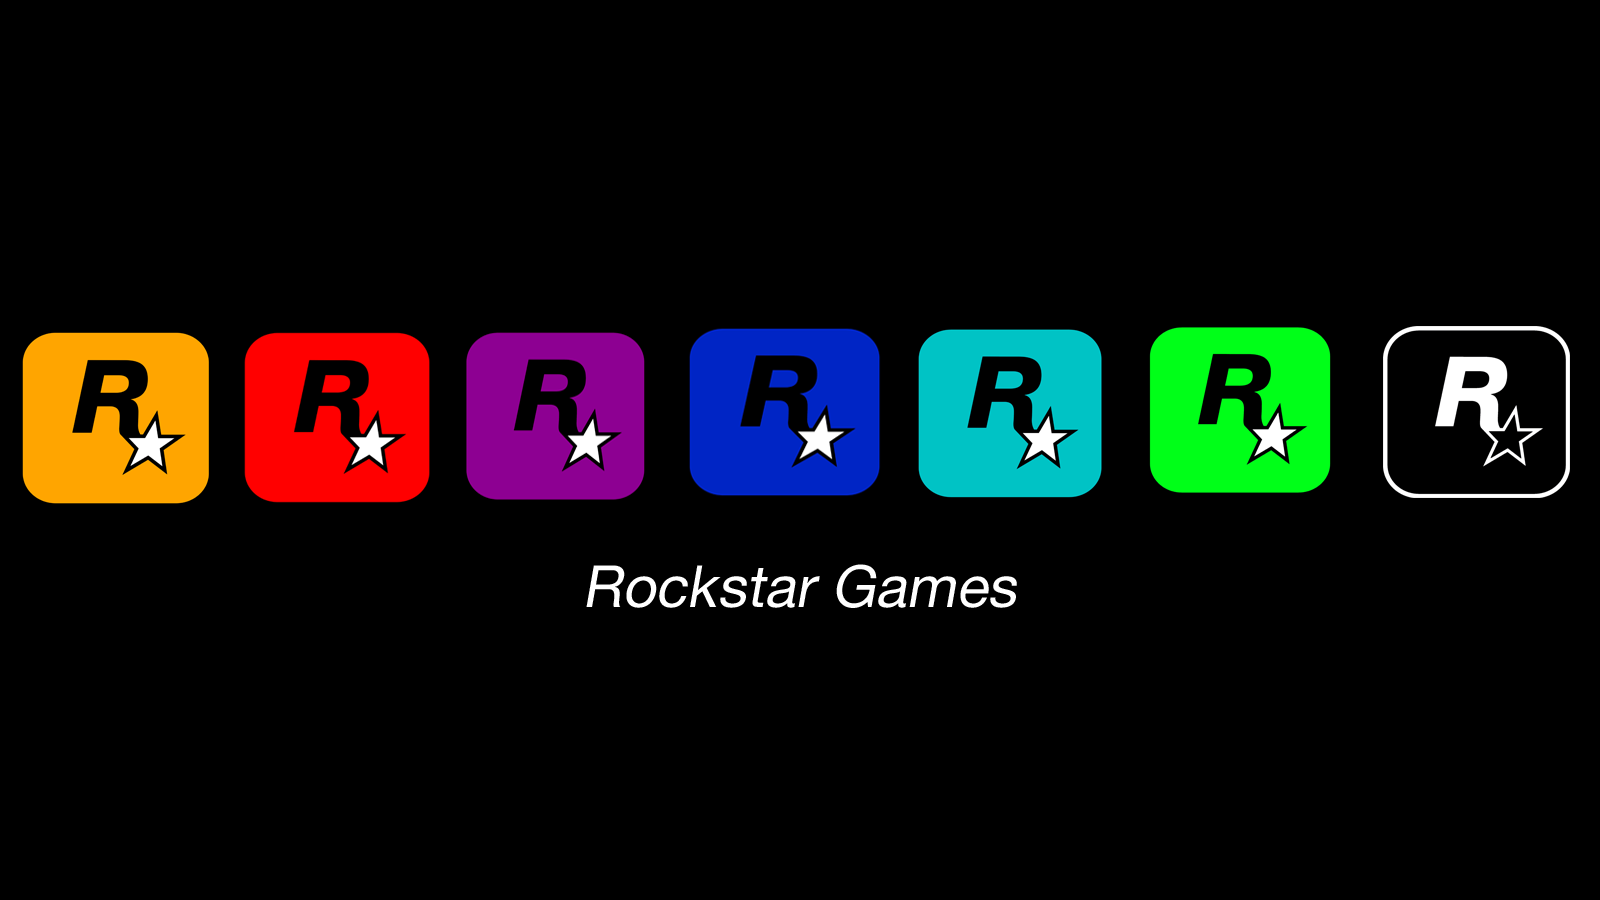 Rockstar Computer Wallpapers Desktop Backgrounds 1600x900